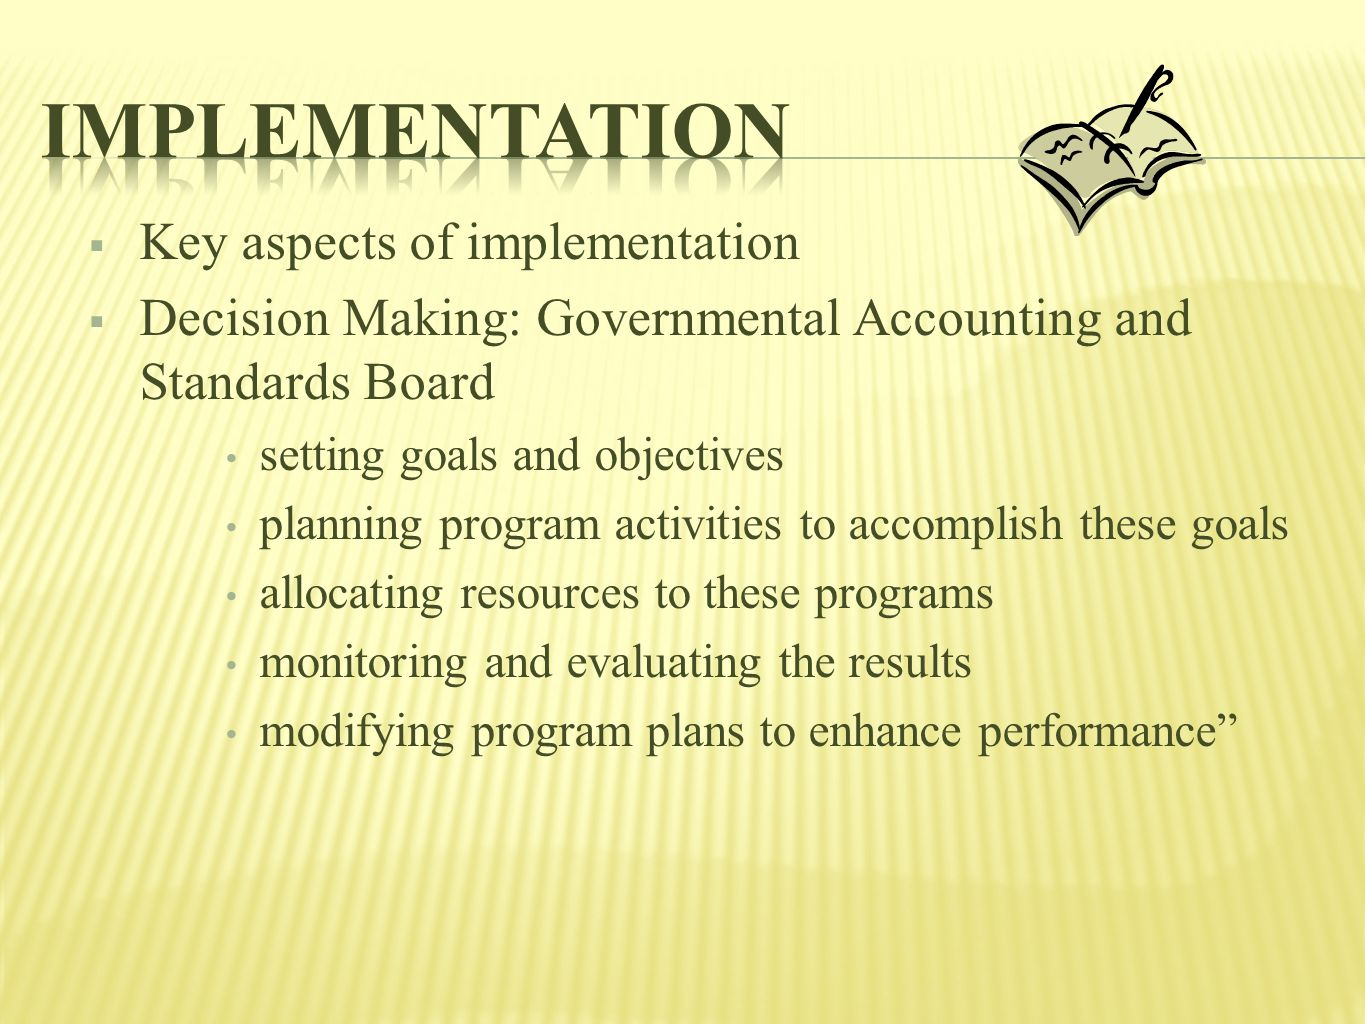  Key aspects of implementation  Decision Making: Governmental Accounting and Standards Board setting goals and objectives planning program activities to accomplish these goals allocating resources to these programs monitoring and evaluating the results modifying program plans to enhance performance